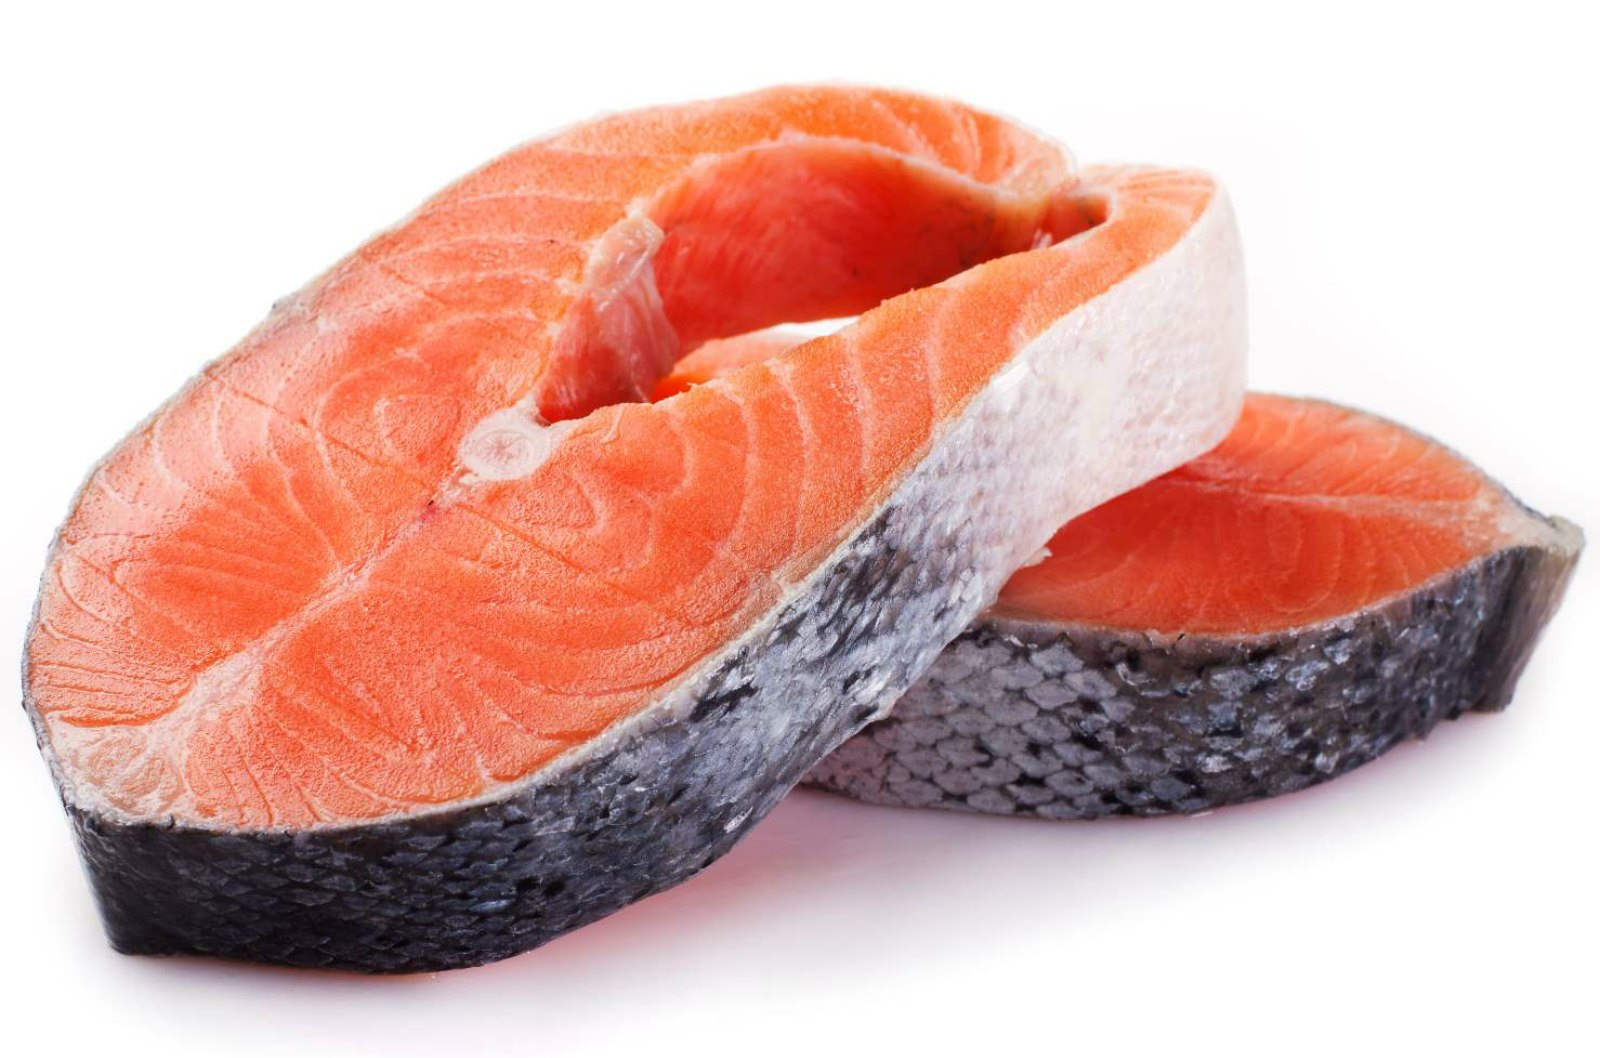 Pin Bone Wizard Removes Fine Bones from Salmon and Trout Fillets